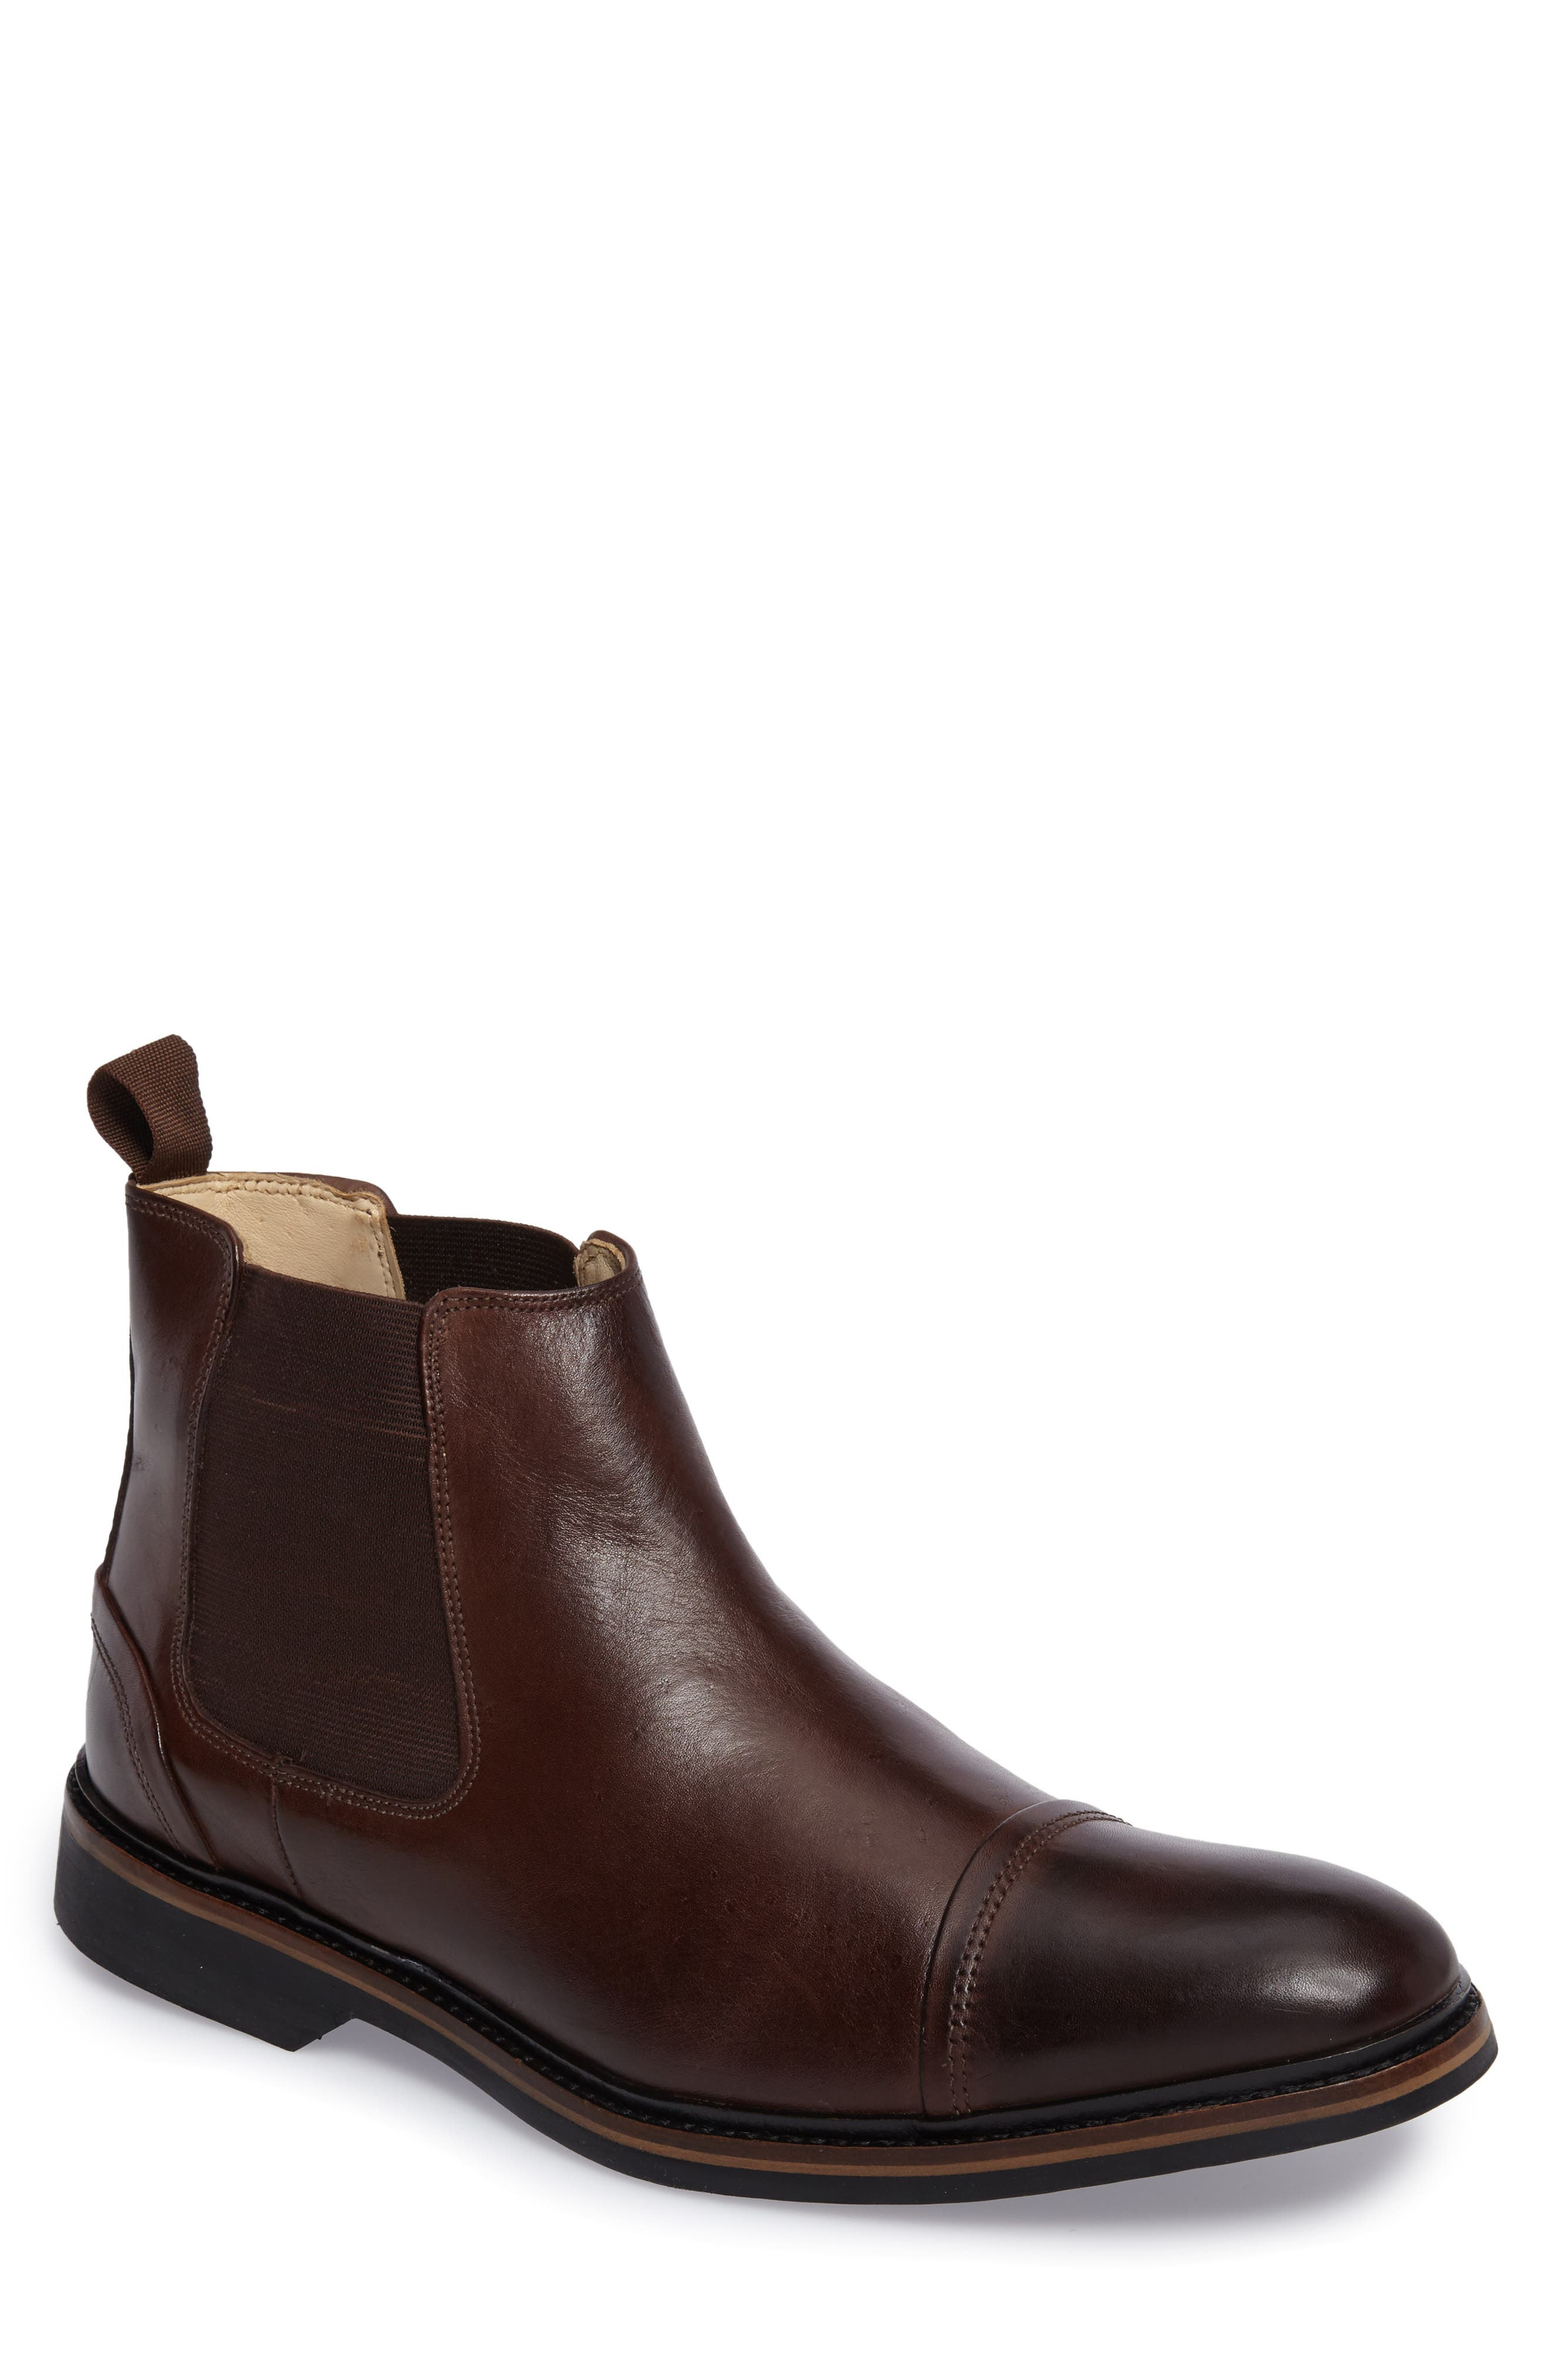 Floriano Chelsea Boot,                             Main thumbnail 1, color,                             Touch Castanho